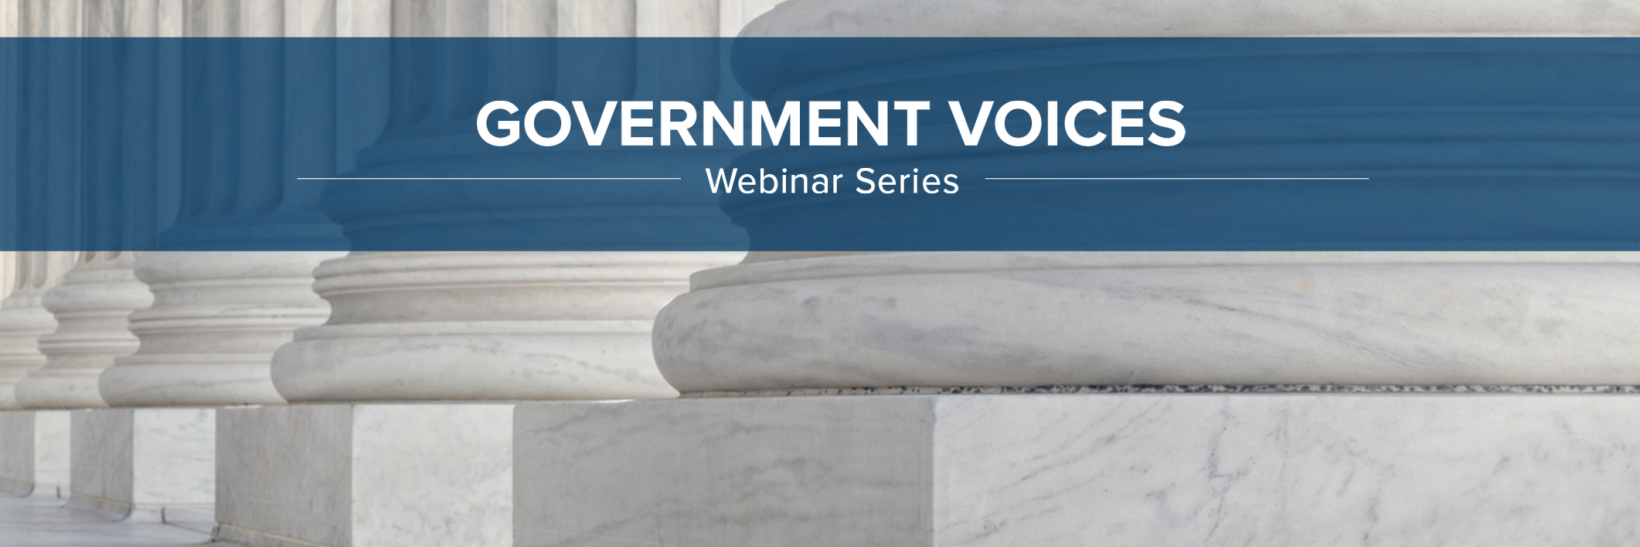 Government Voices Webinar